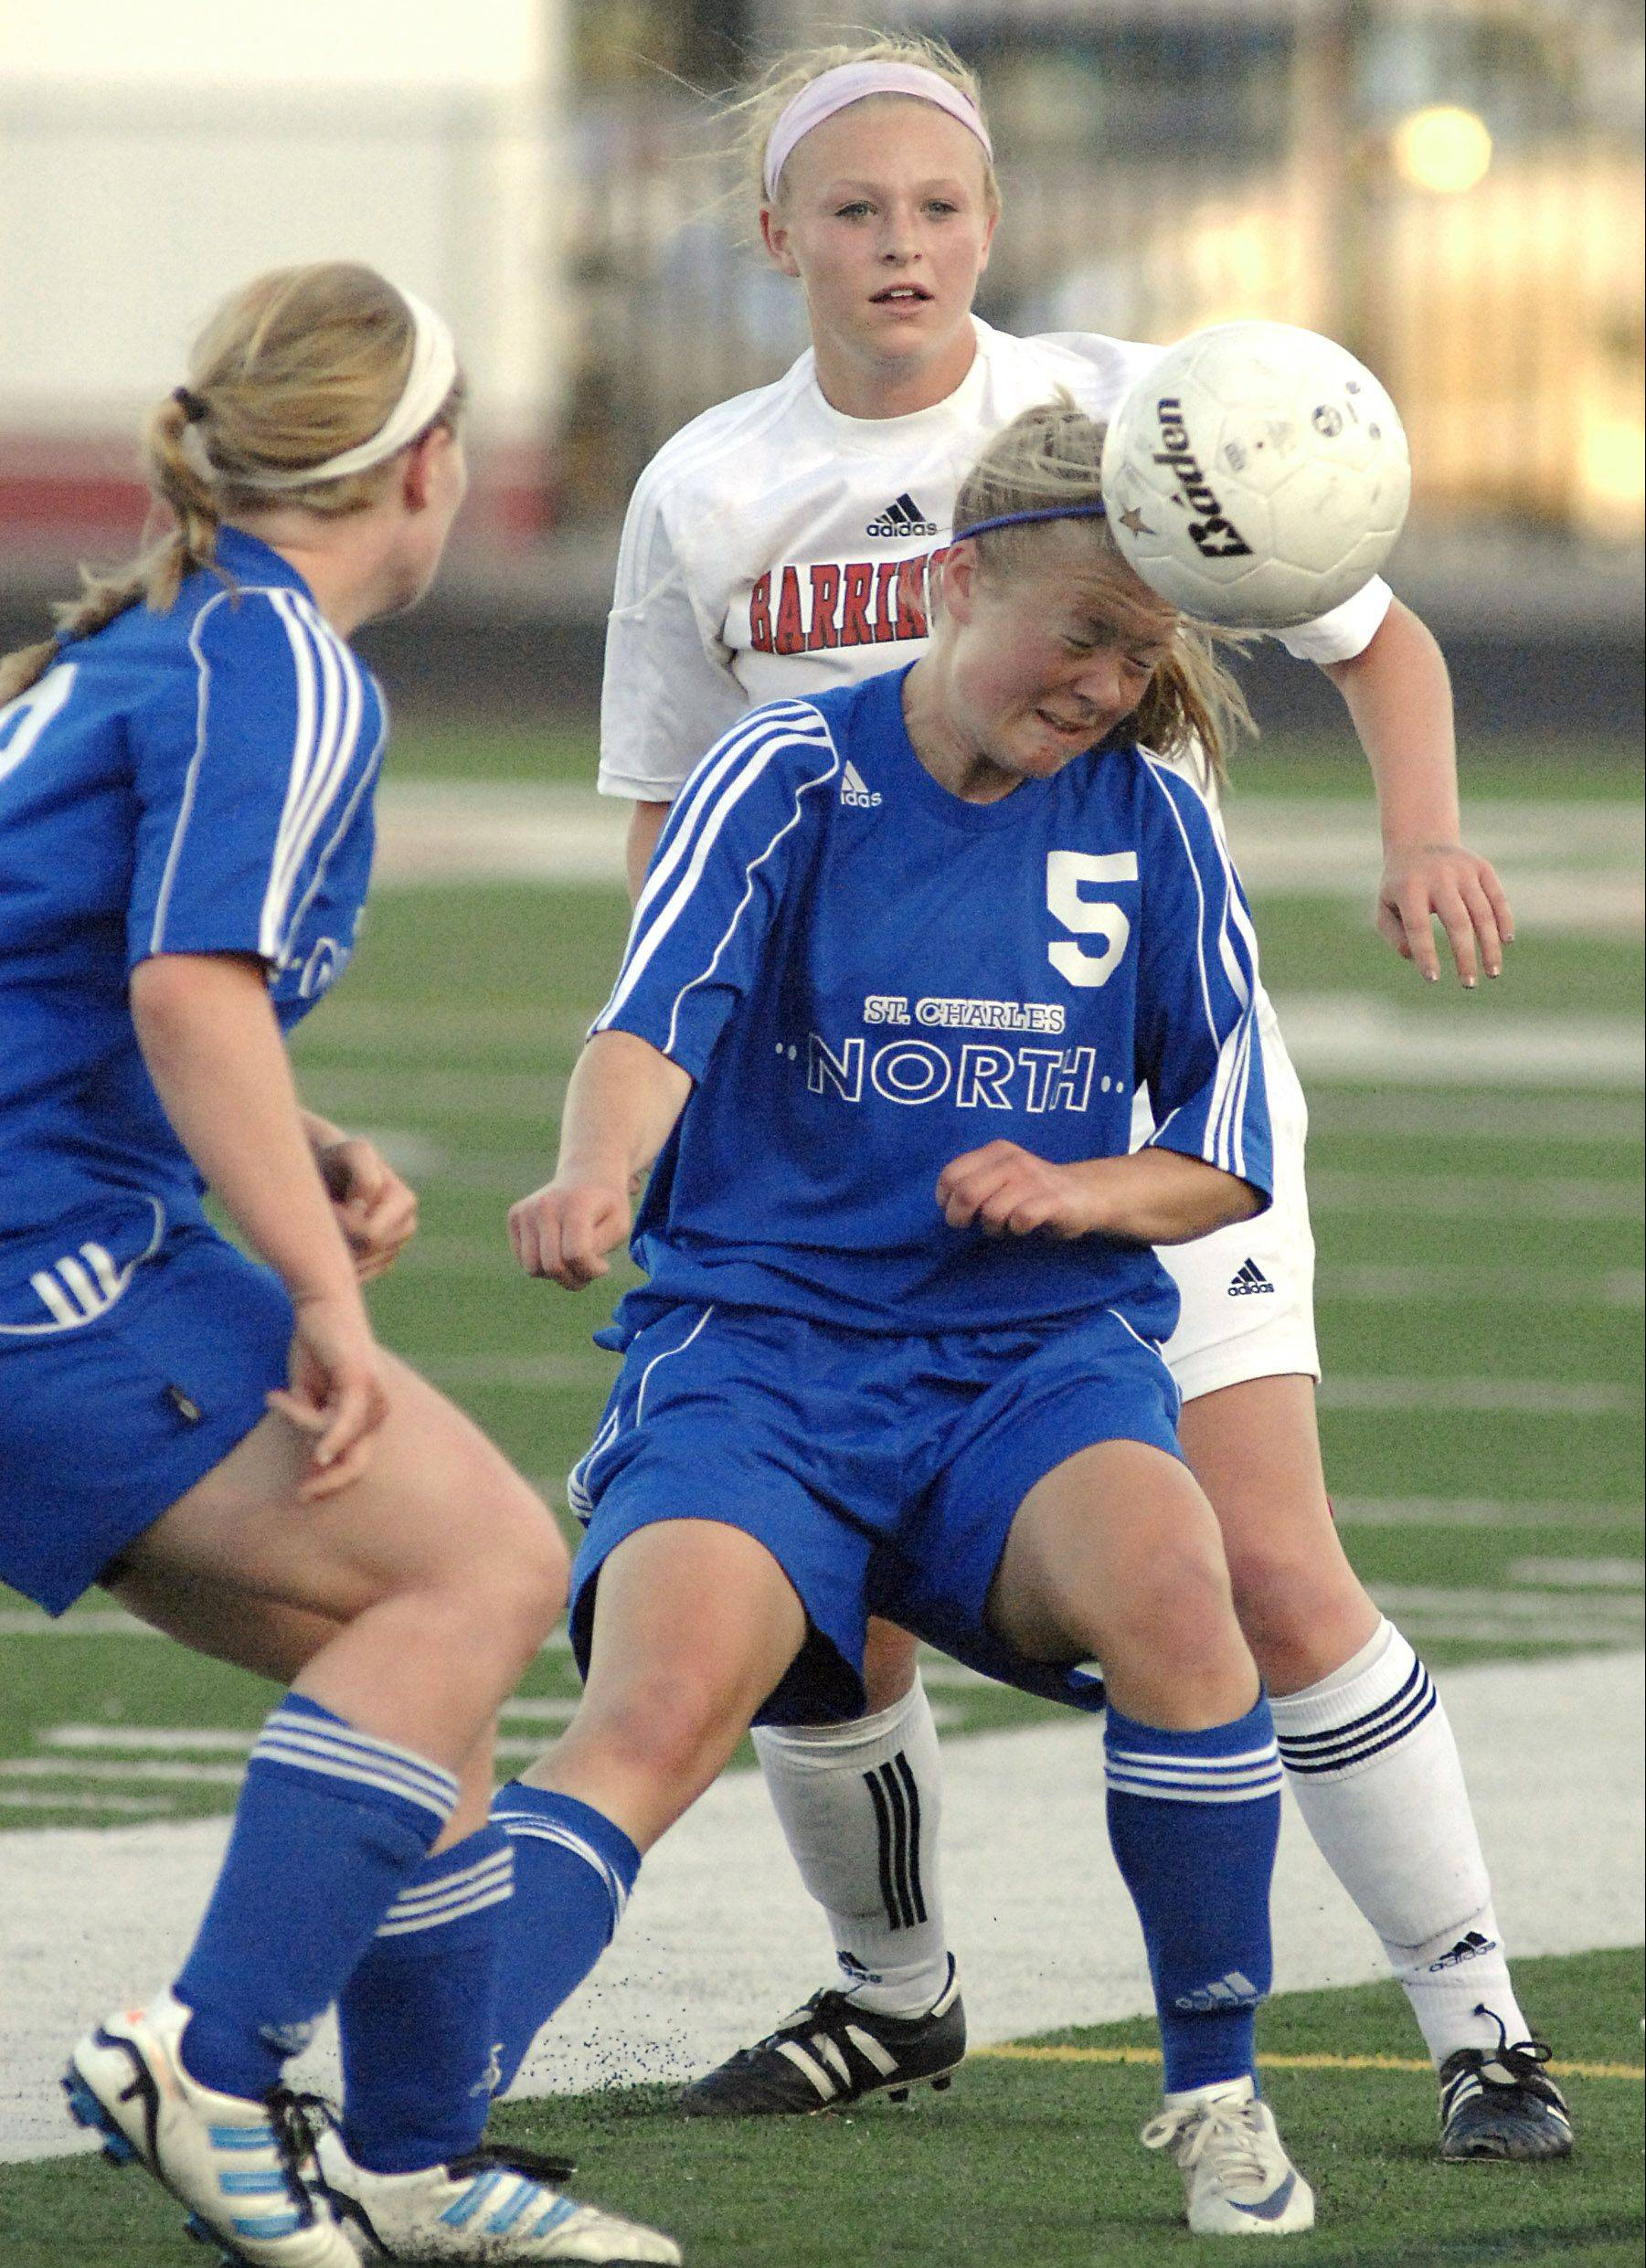 Natalie Winkates heads a ball during St. Charles North's supersectional victory last year.